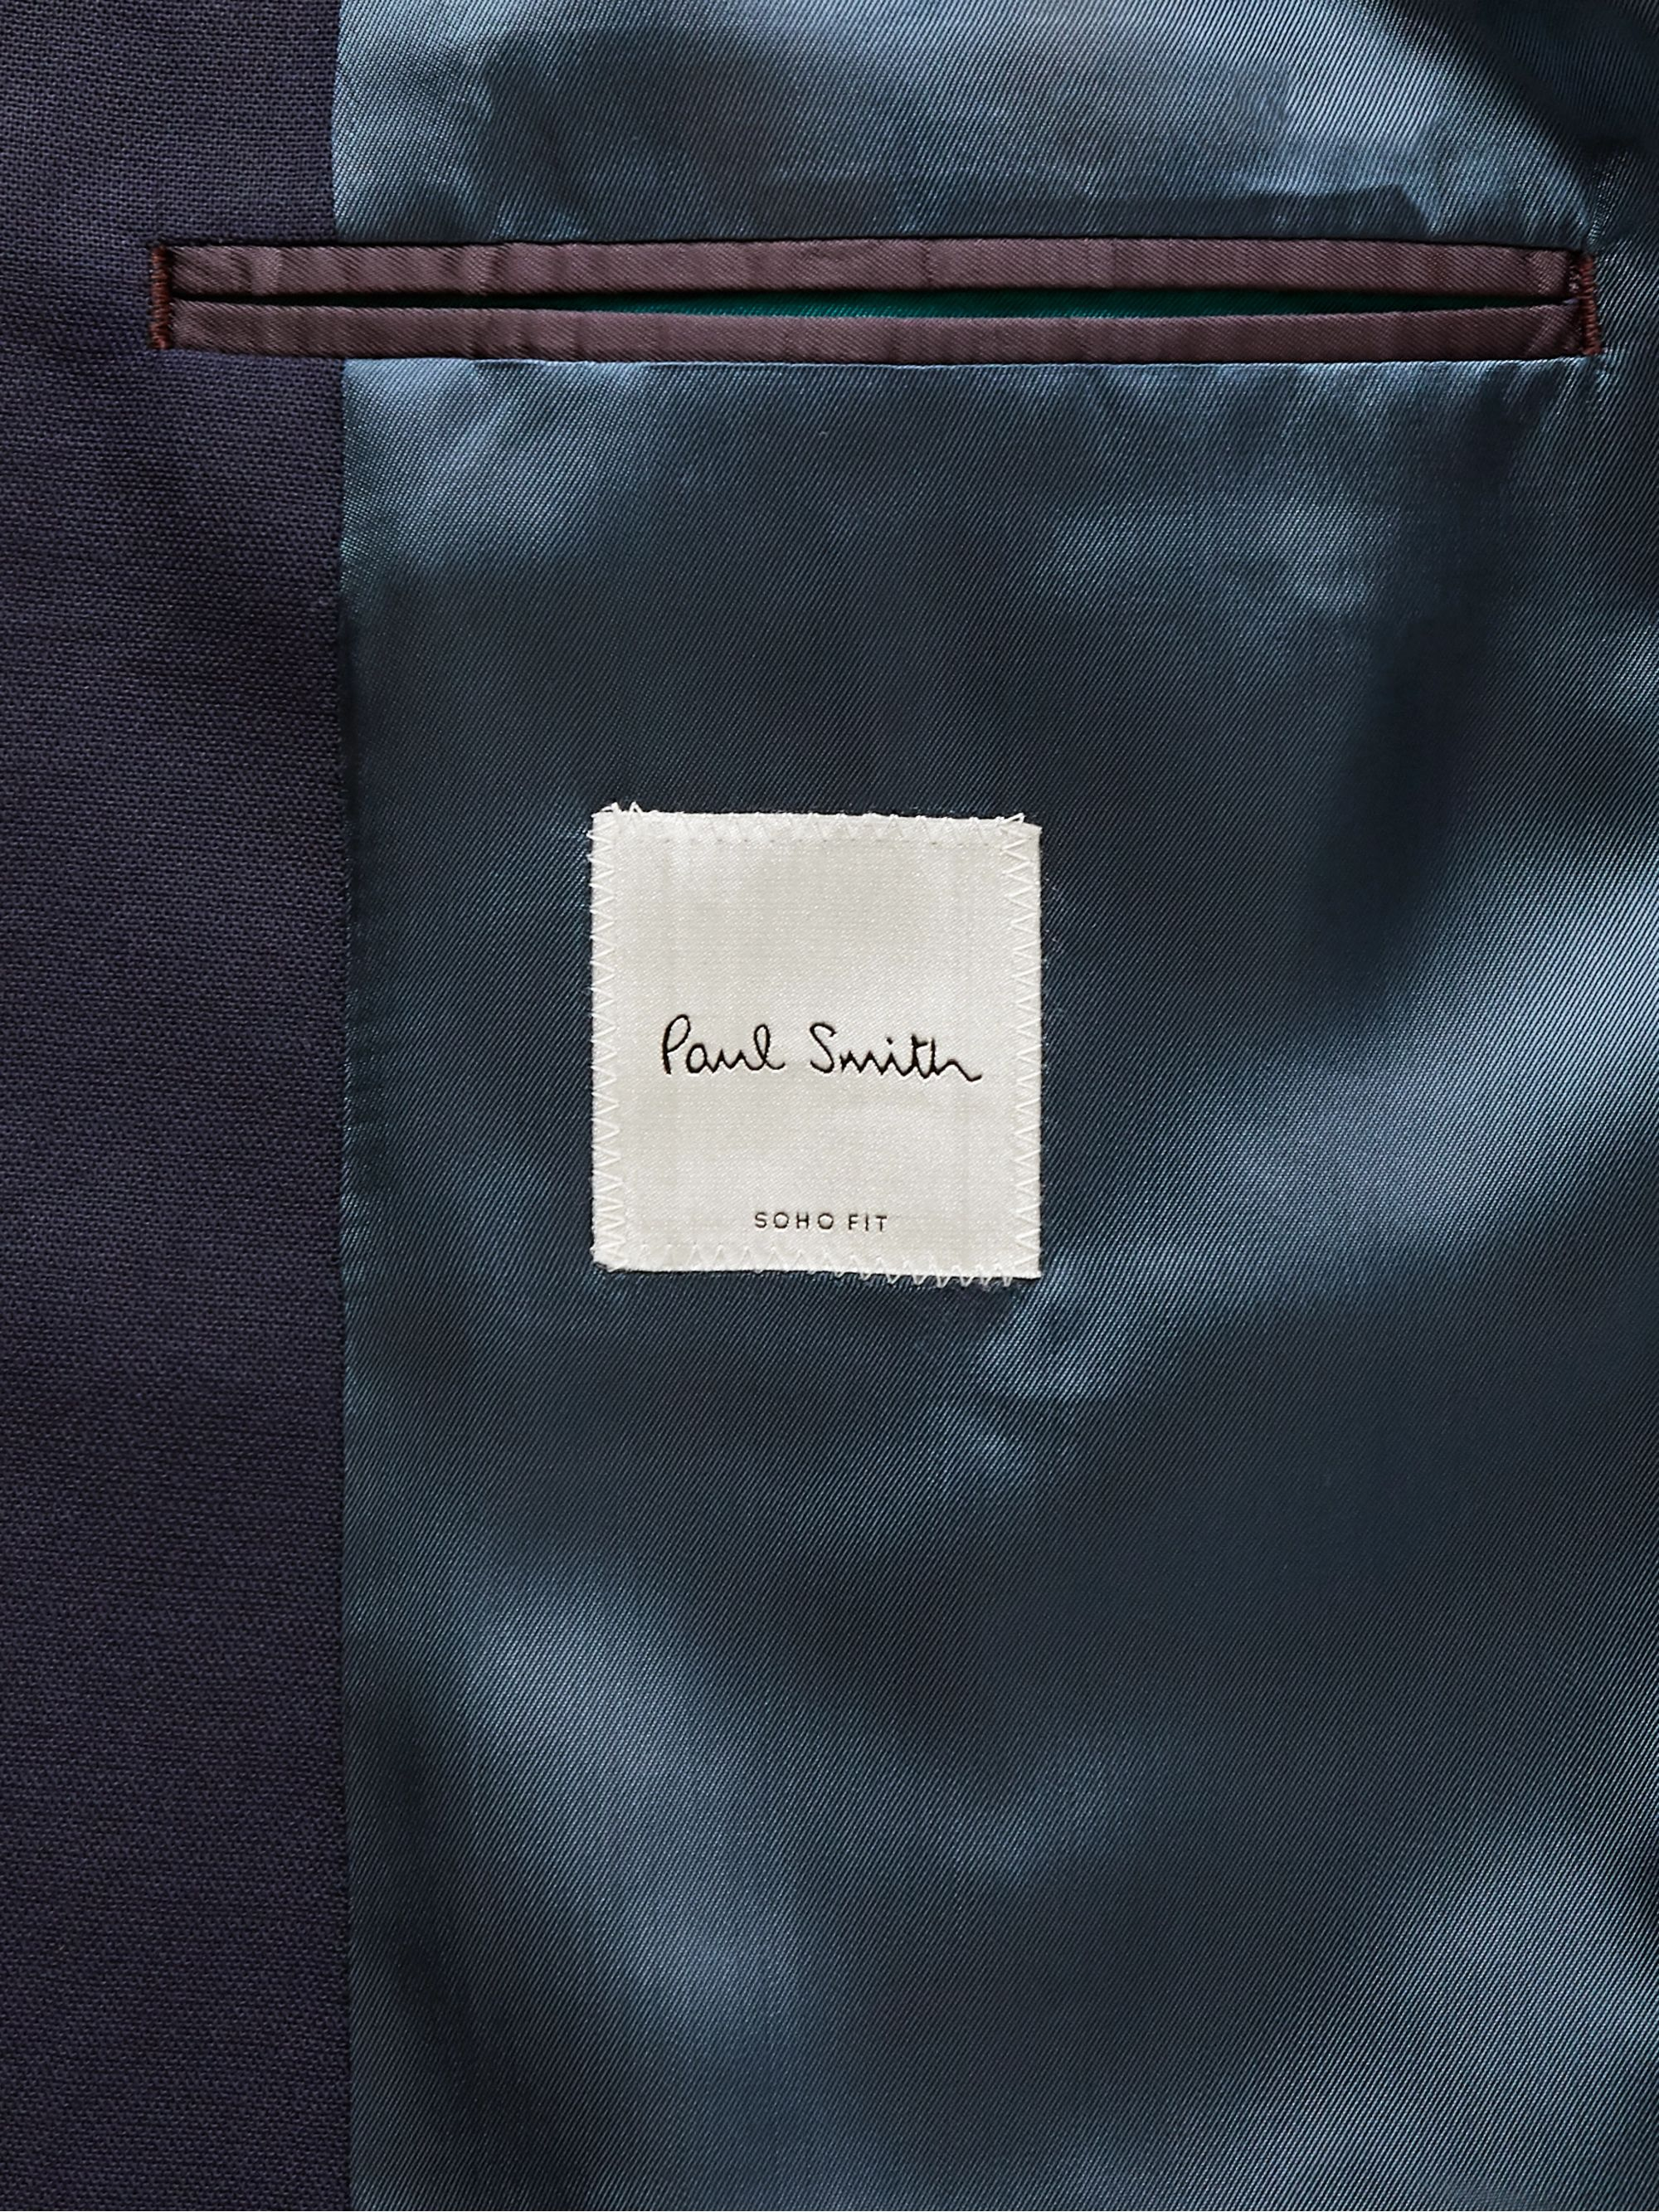 Paul Smith Navy Kensington Slim-Fit Wool Suit Jacket